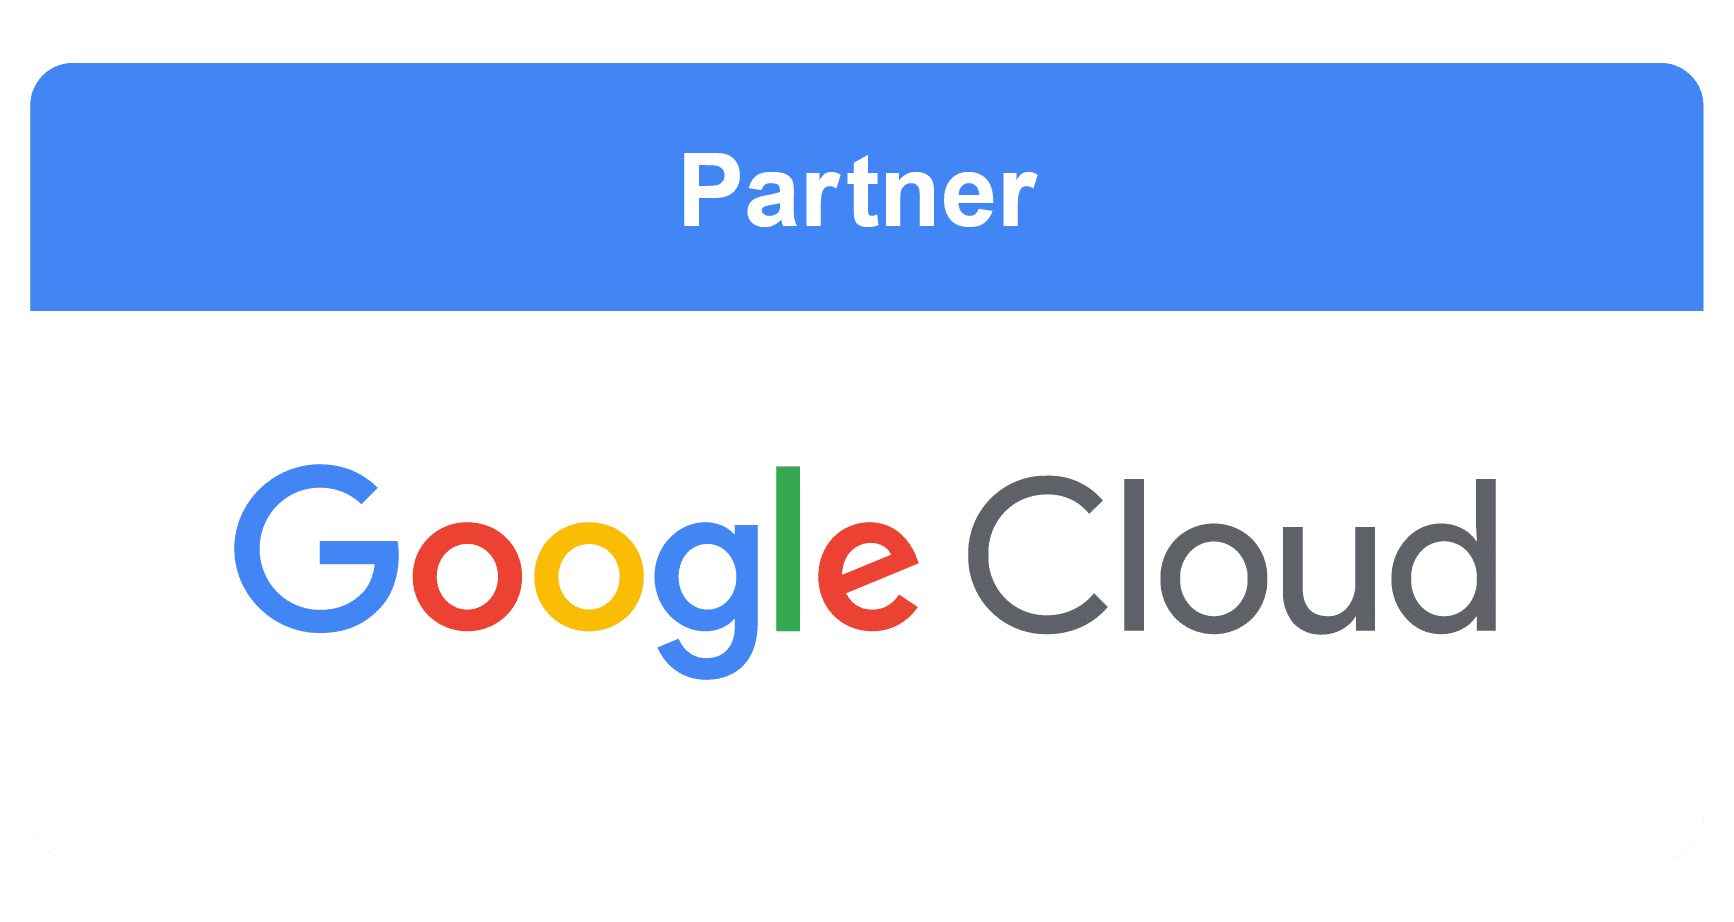 google-cloud-Partner-logo-01